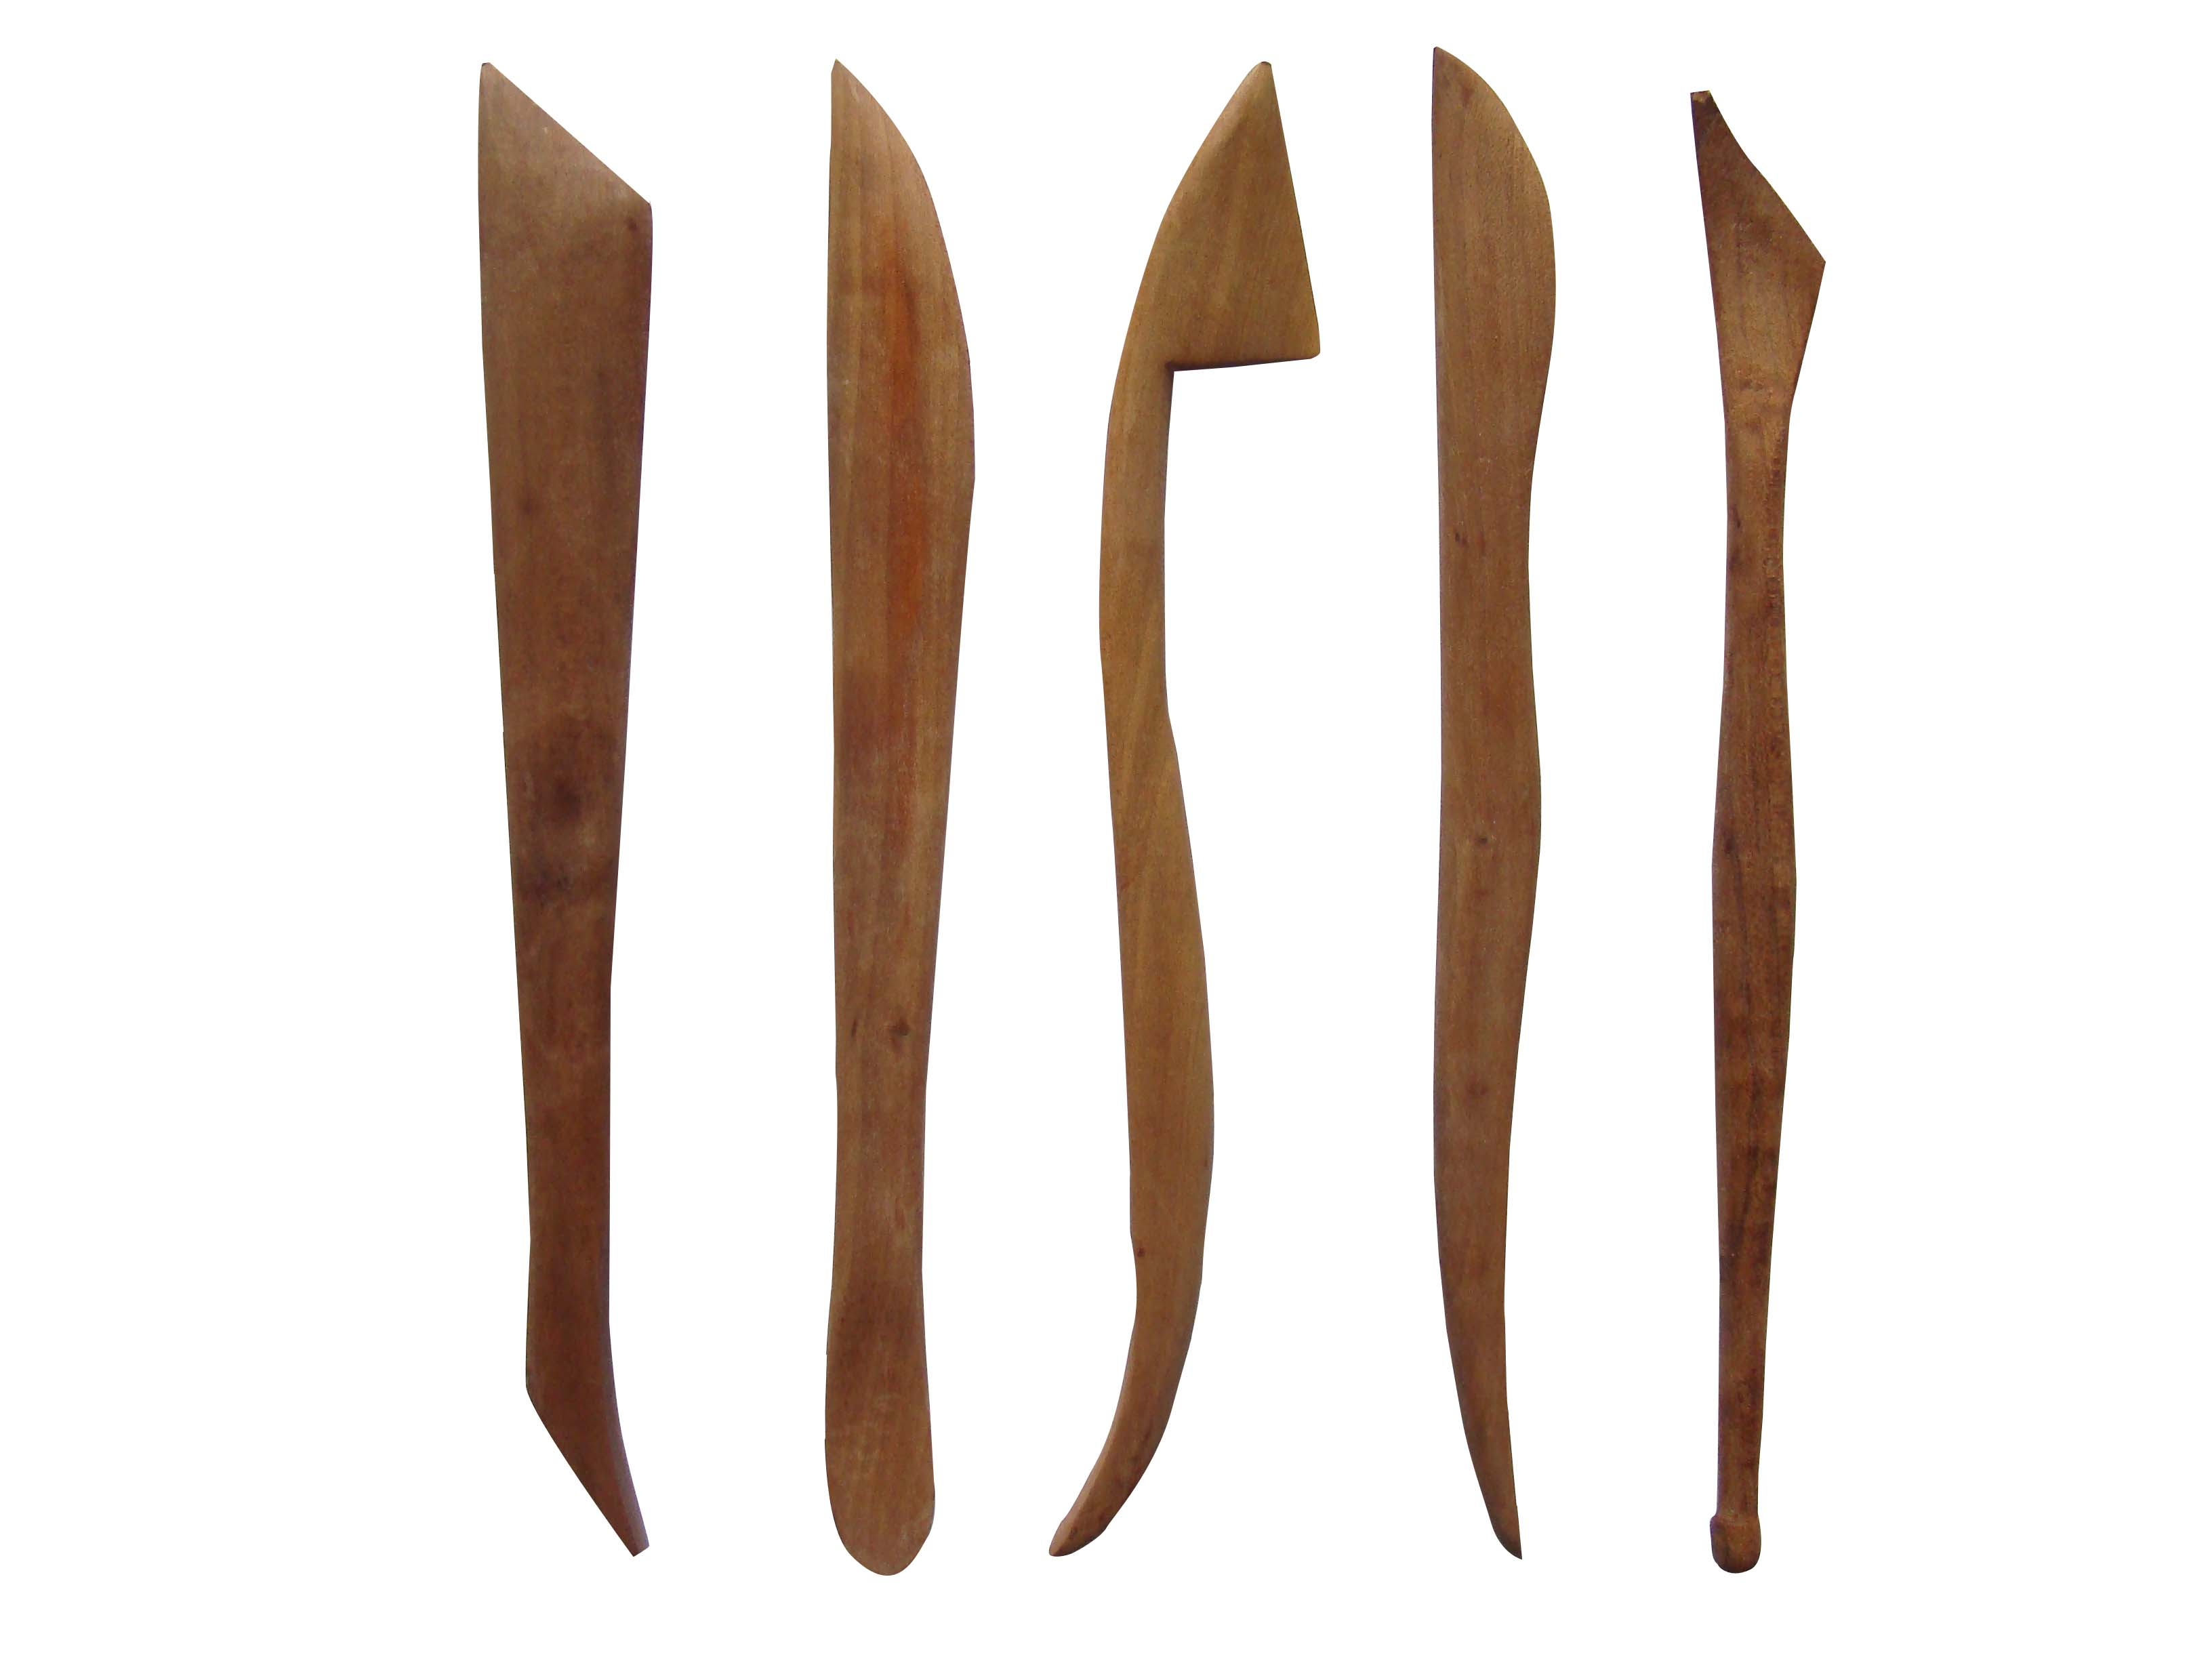 20cm Dark Brown Handmade And Fine Quality Boxwood Tool for Cutting and Carving